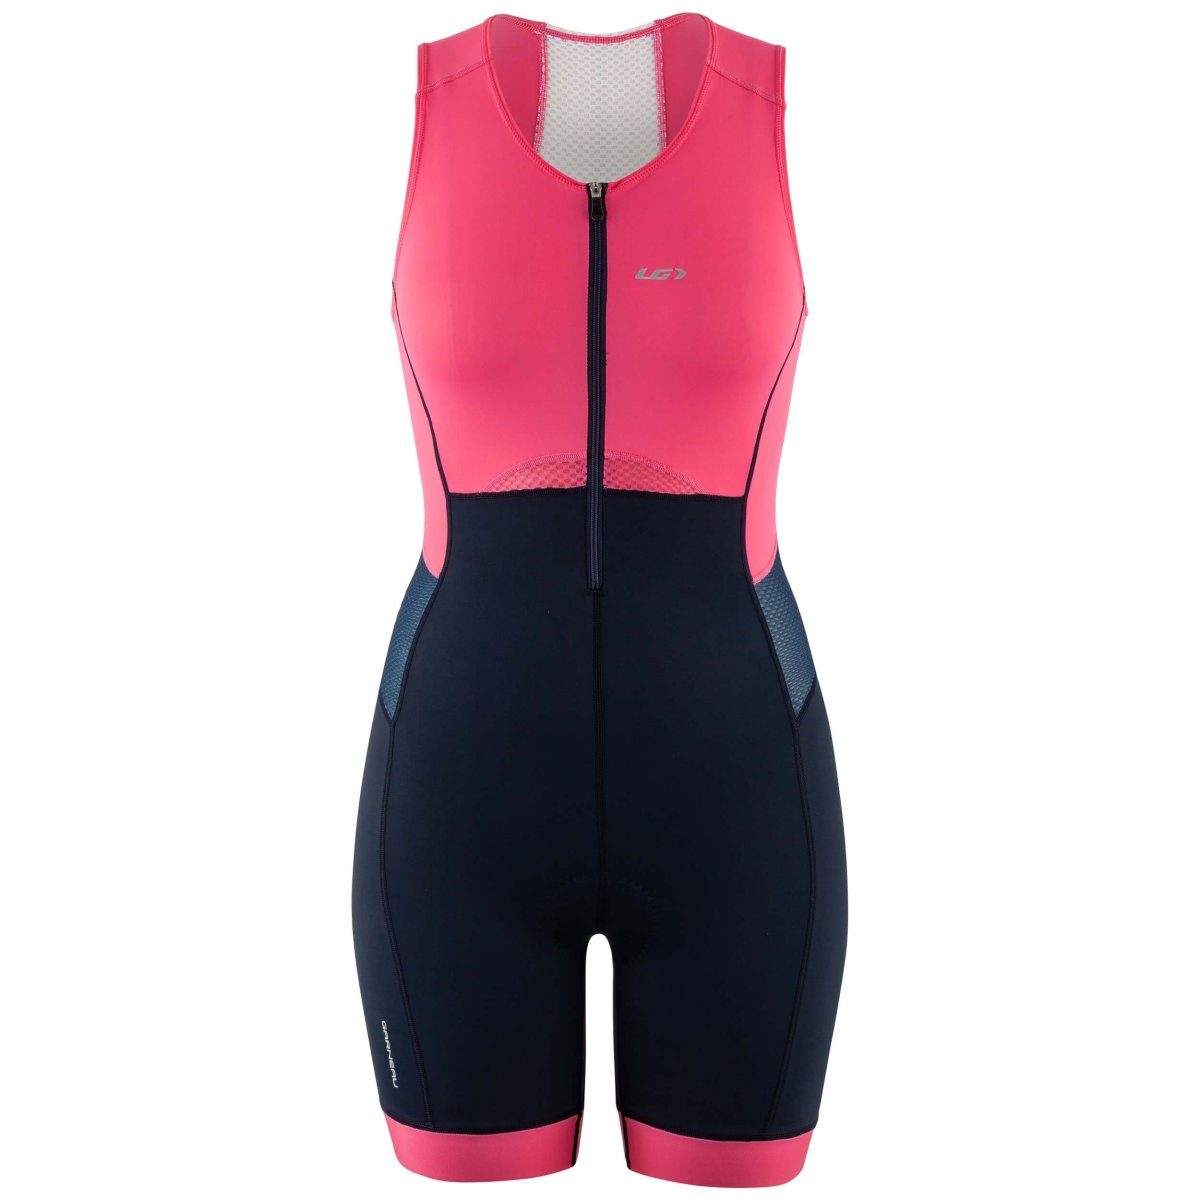 Велокостюм Garneau Women's Sprint Tri Suit 1058422 573 S